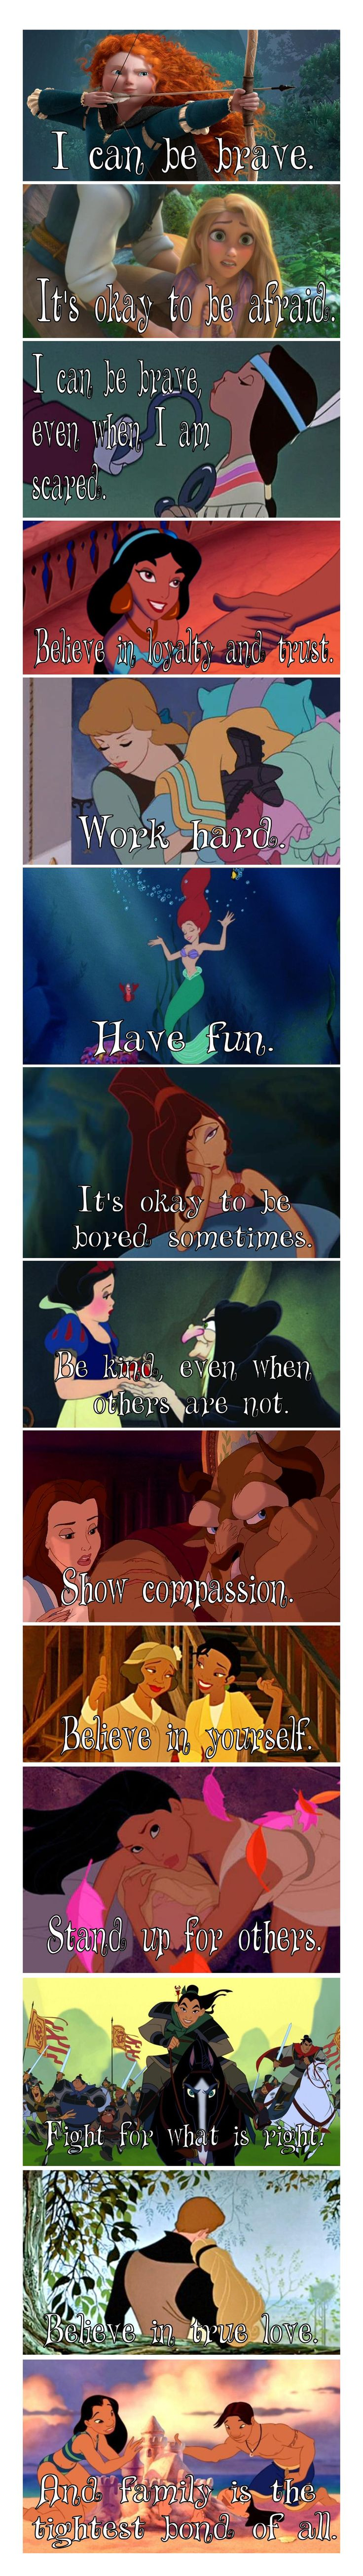 Lessons learned from Disney Cartoons